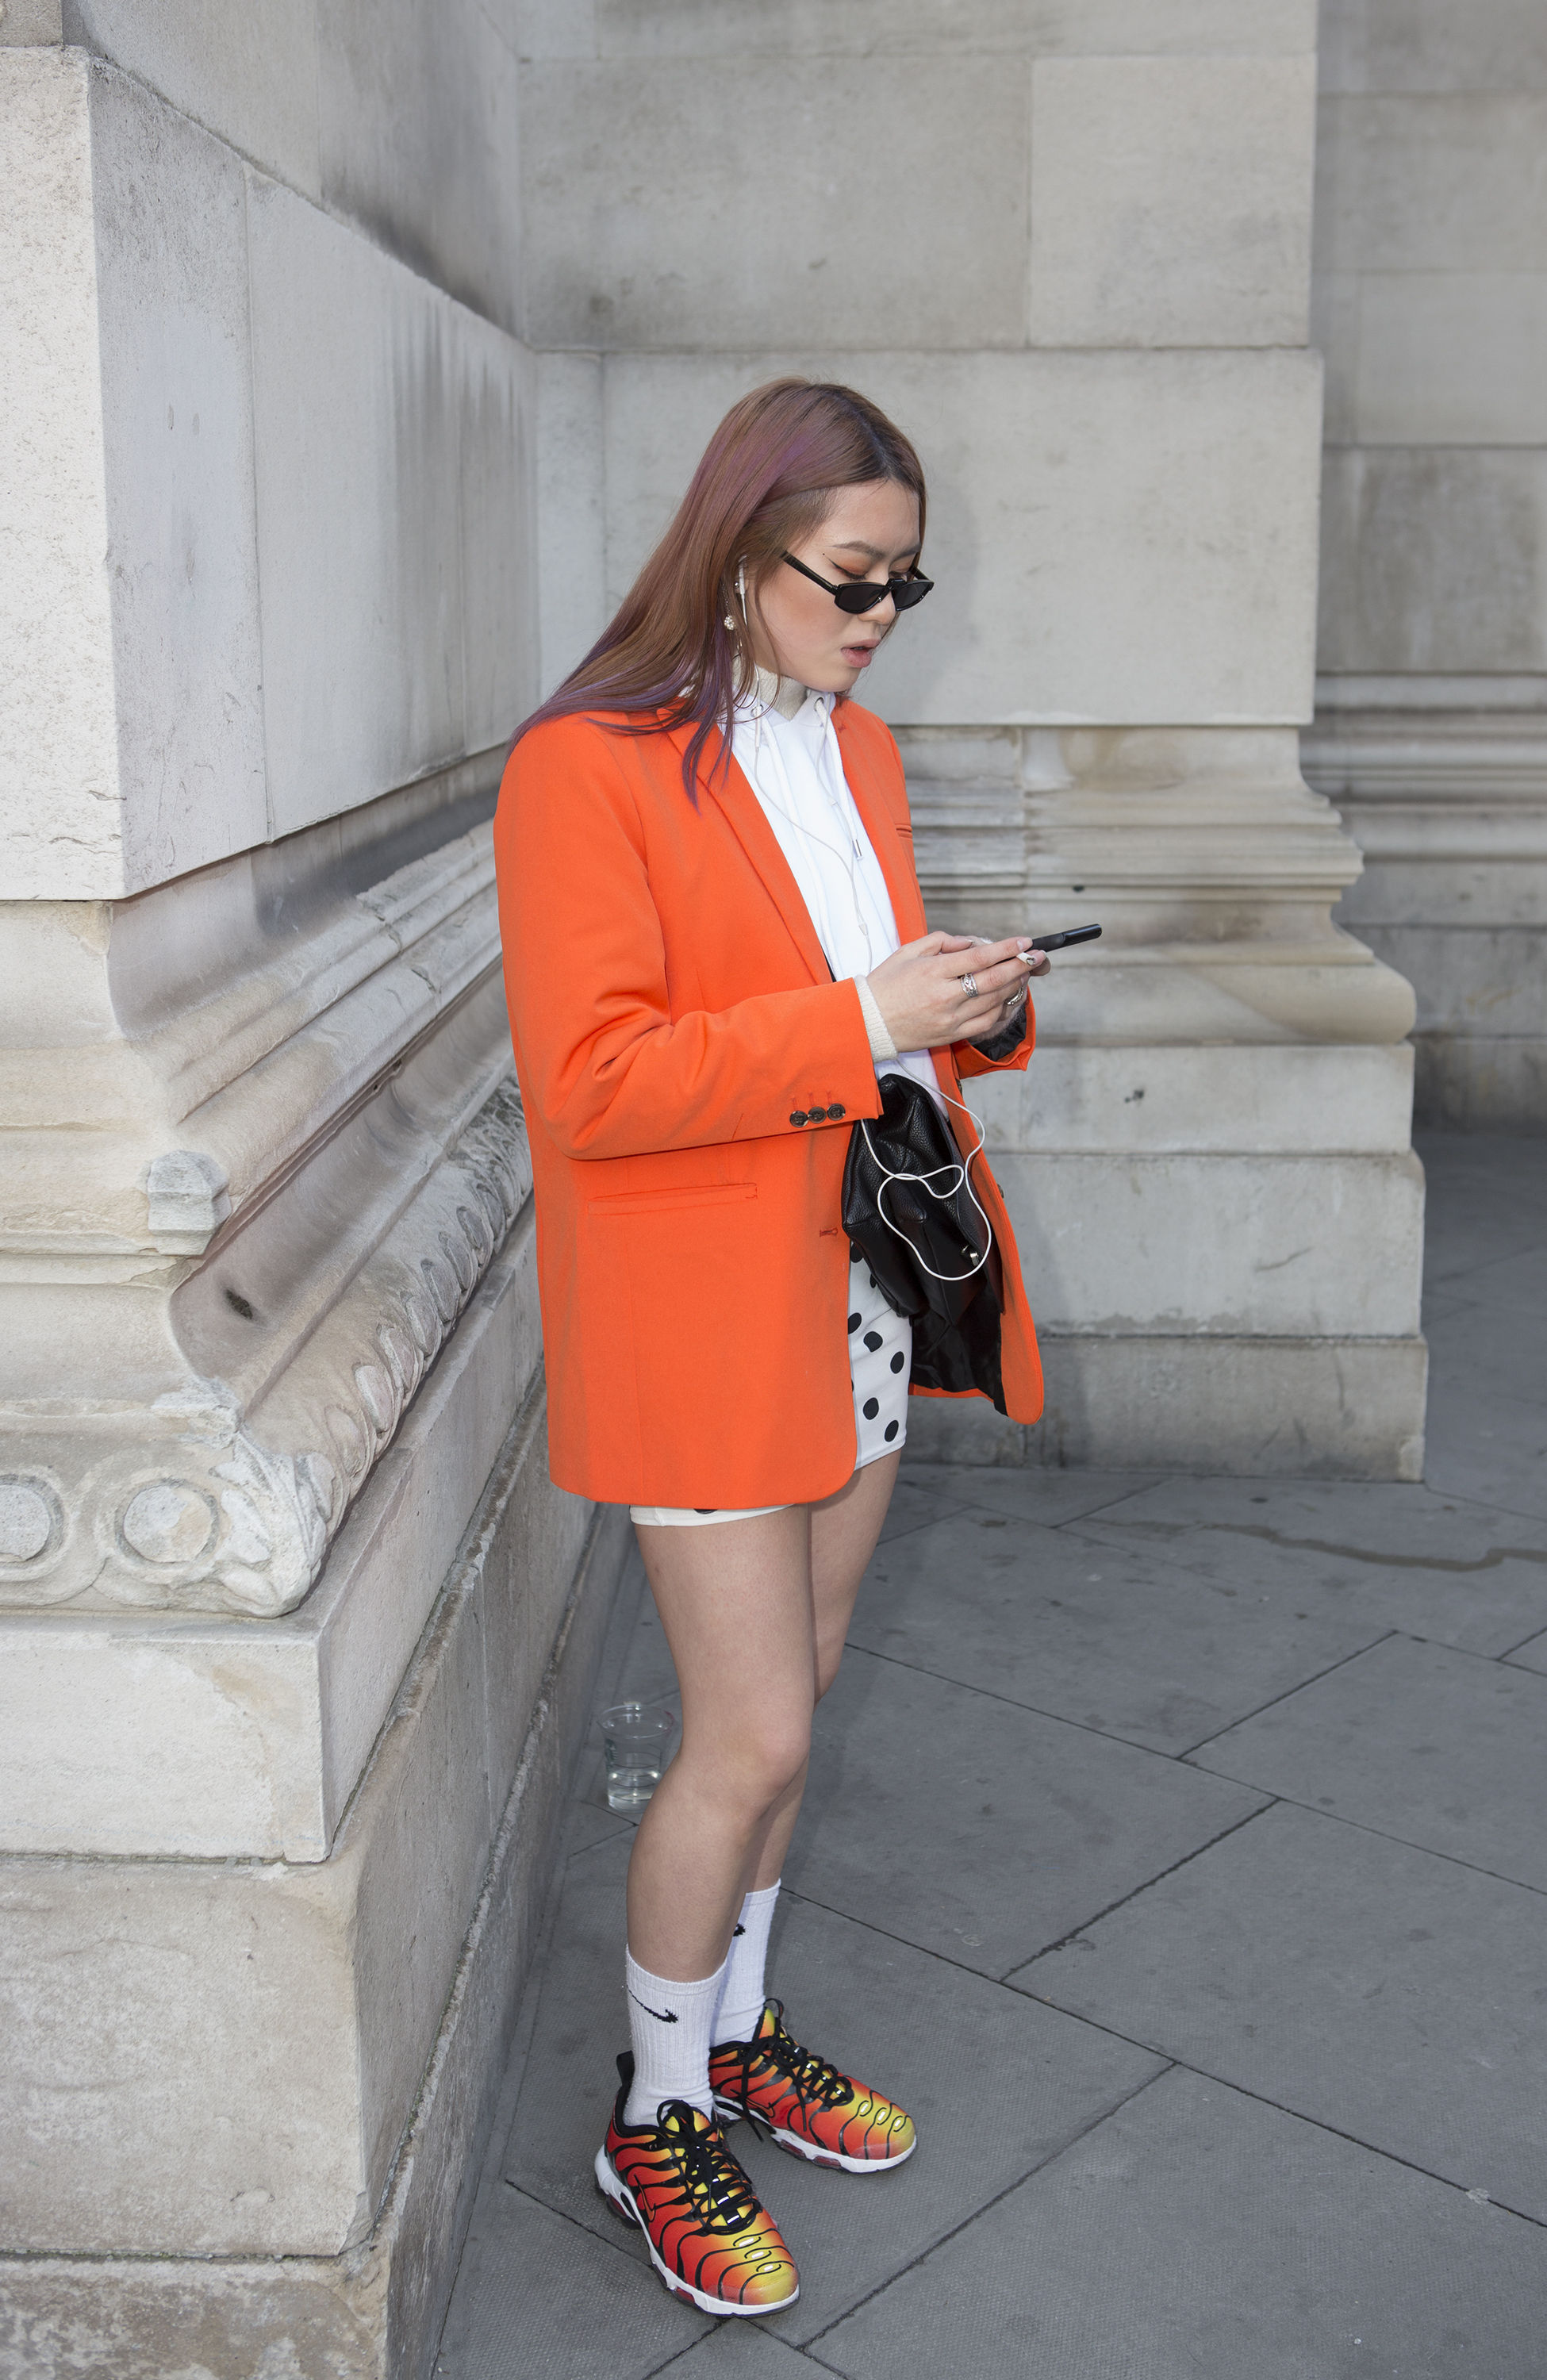 5 Of The Biggest Street Style Trends We 39 Ve Seen At London